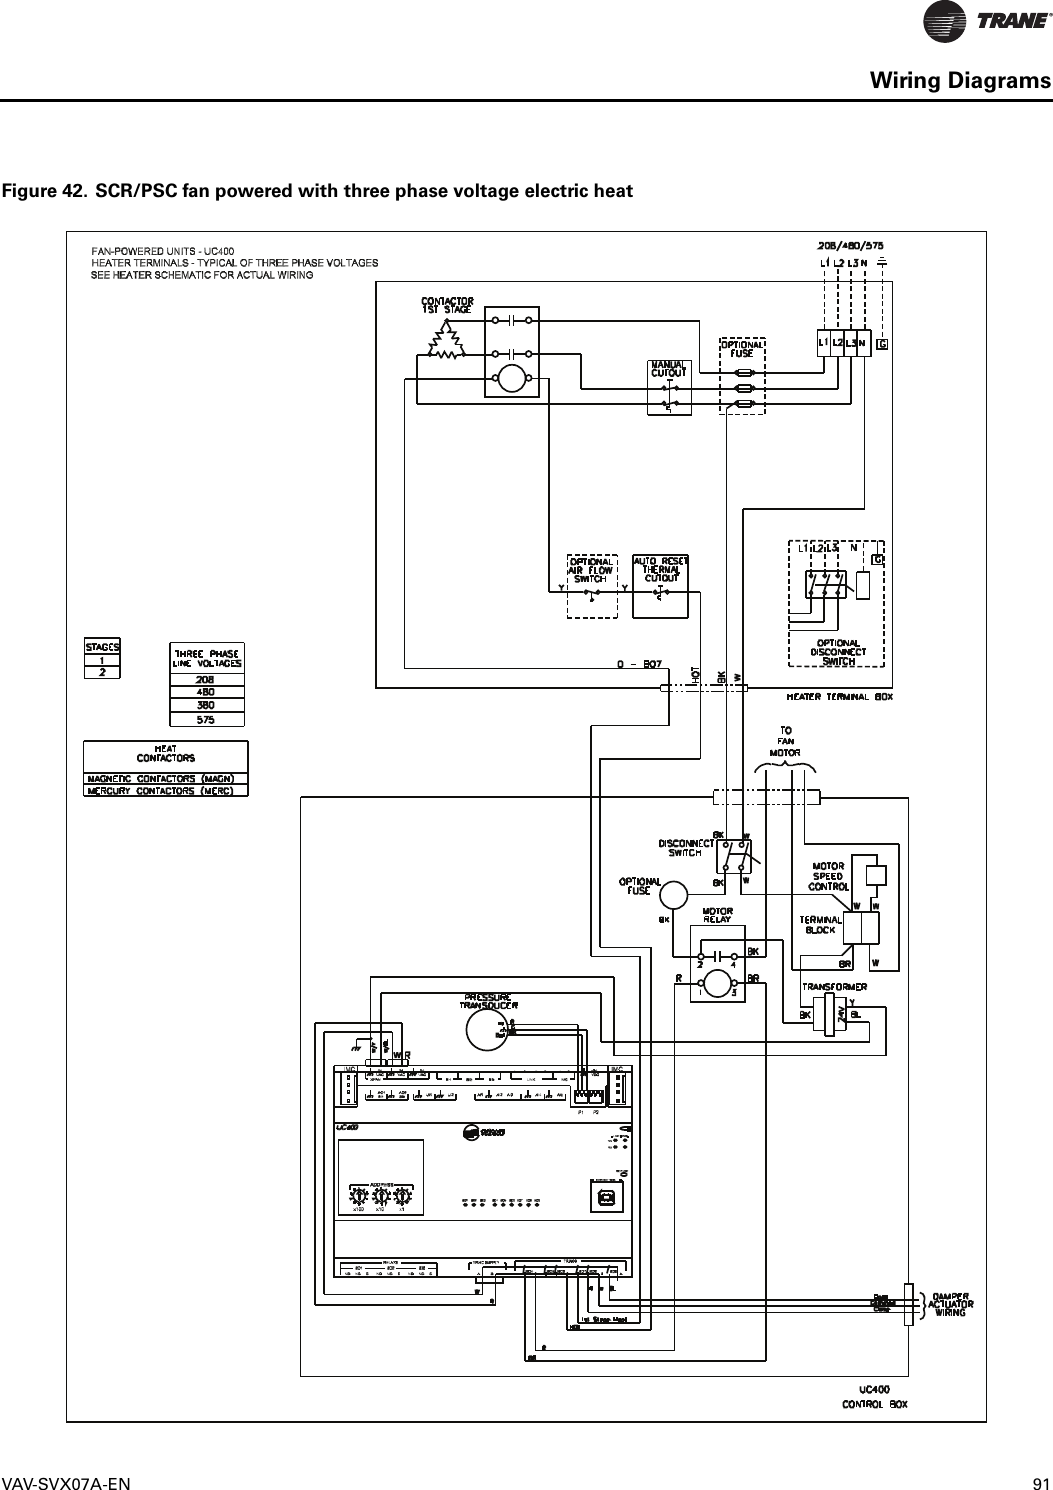 Uc 400 Wiring Diagram | Repair Manual Wcx Wiring Diagram Trane Xl on